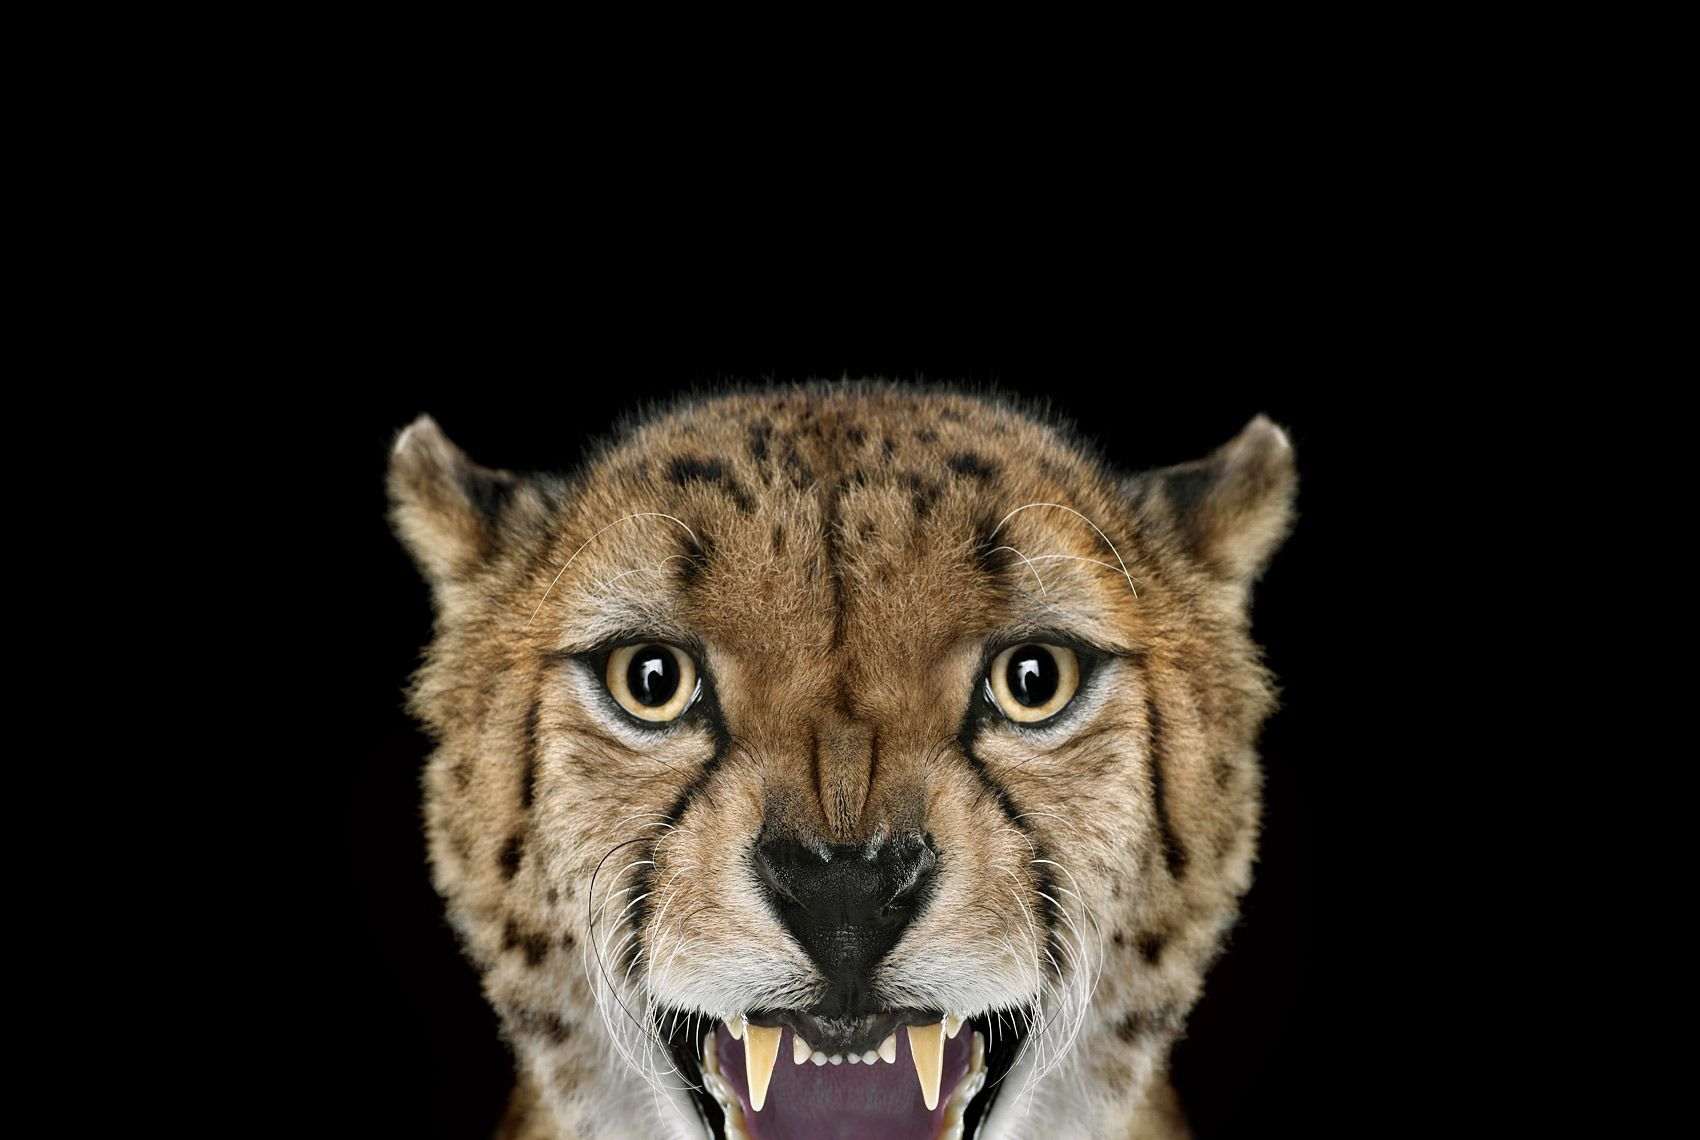 Cheetah #3, Los Angeles, CA, 2011,Brad Wilson,Photographie